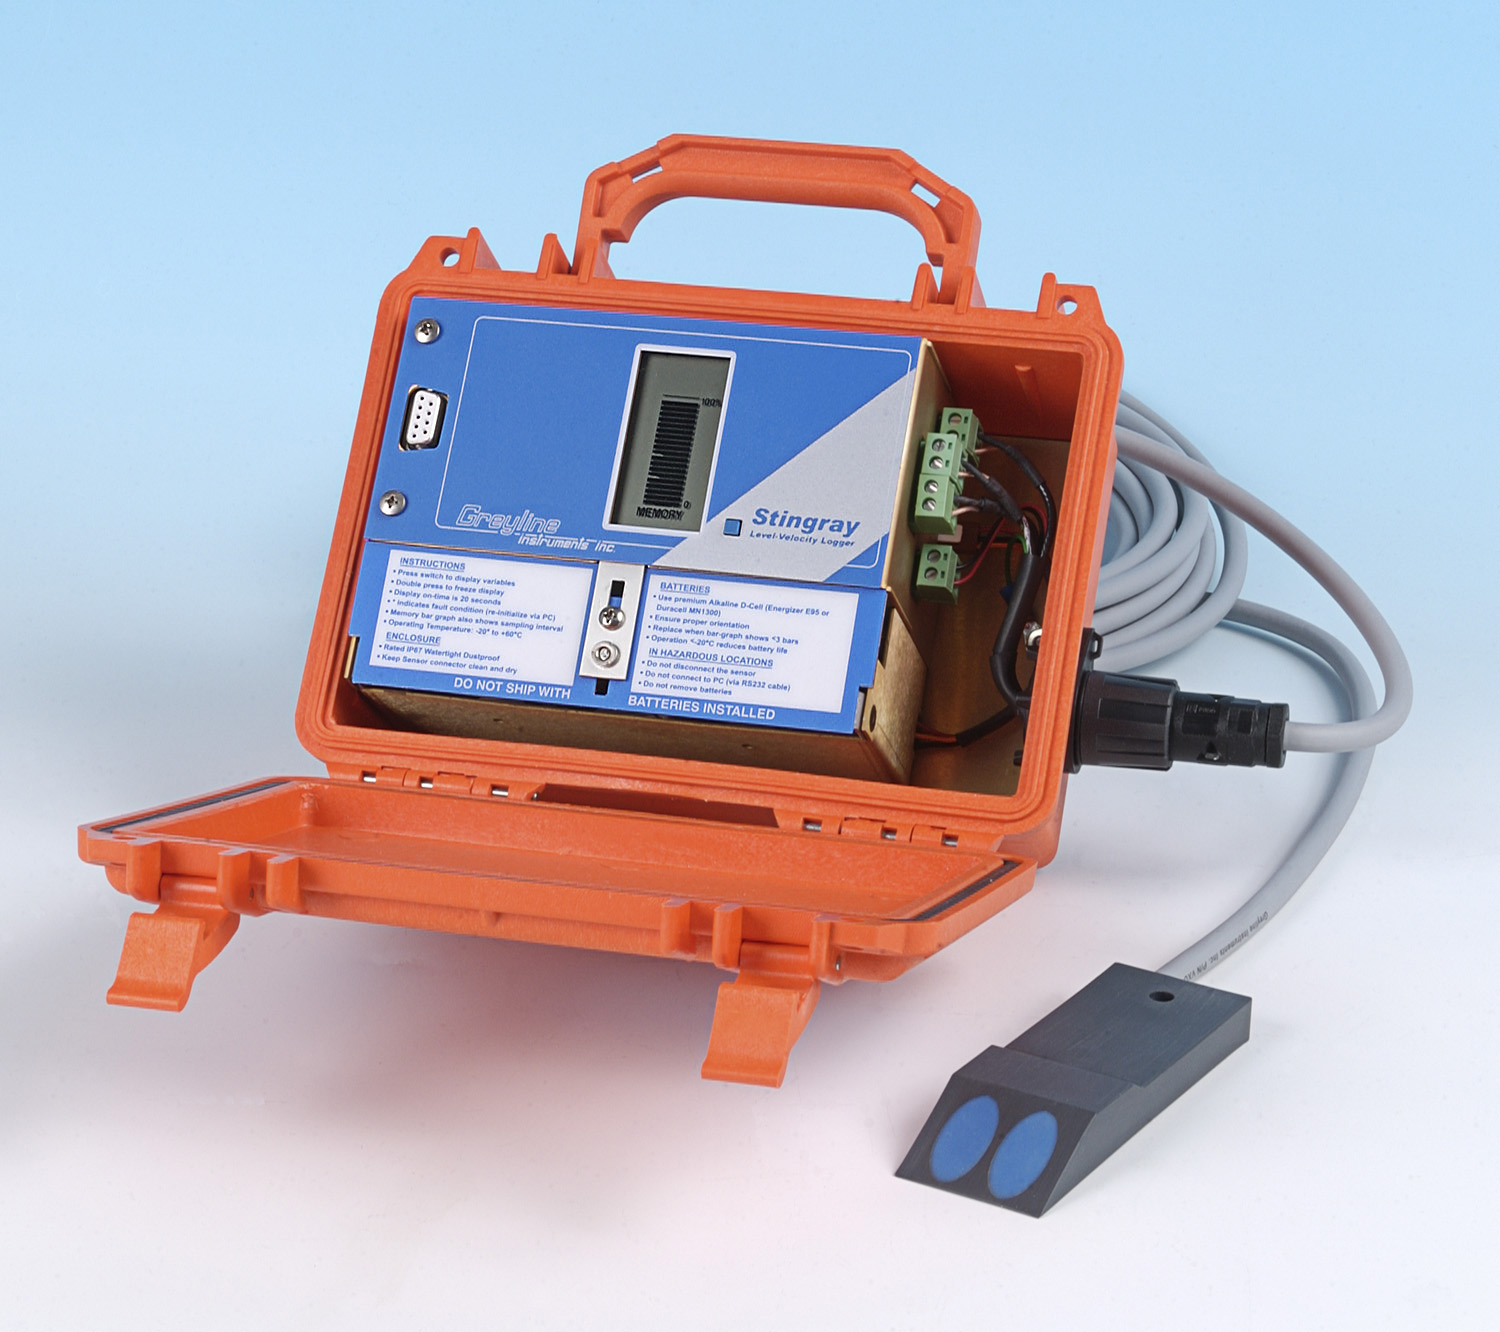 Stingray is a compact, battery-powered logger with an ultrasonic sensor. It data logs level, velocity and water temperature readings for flow monitoring through open channels, partially full sewer pipes and surcharged pipes.